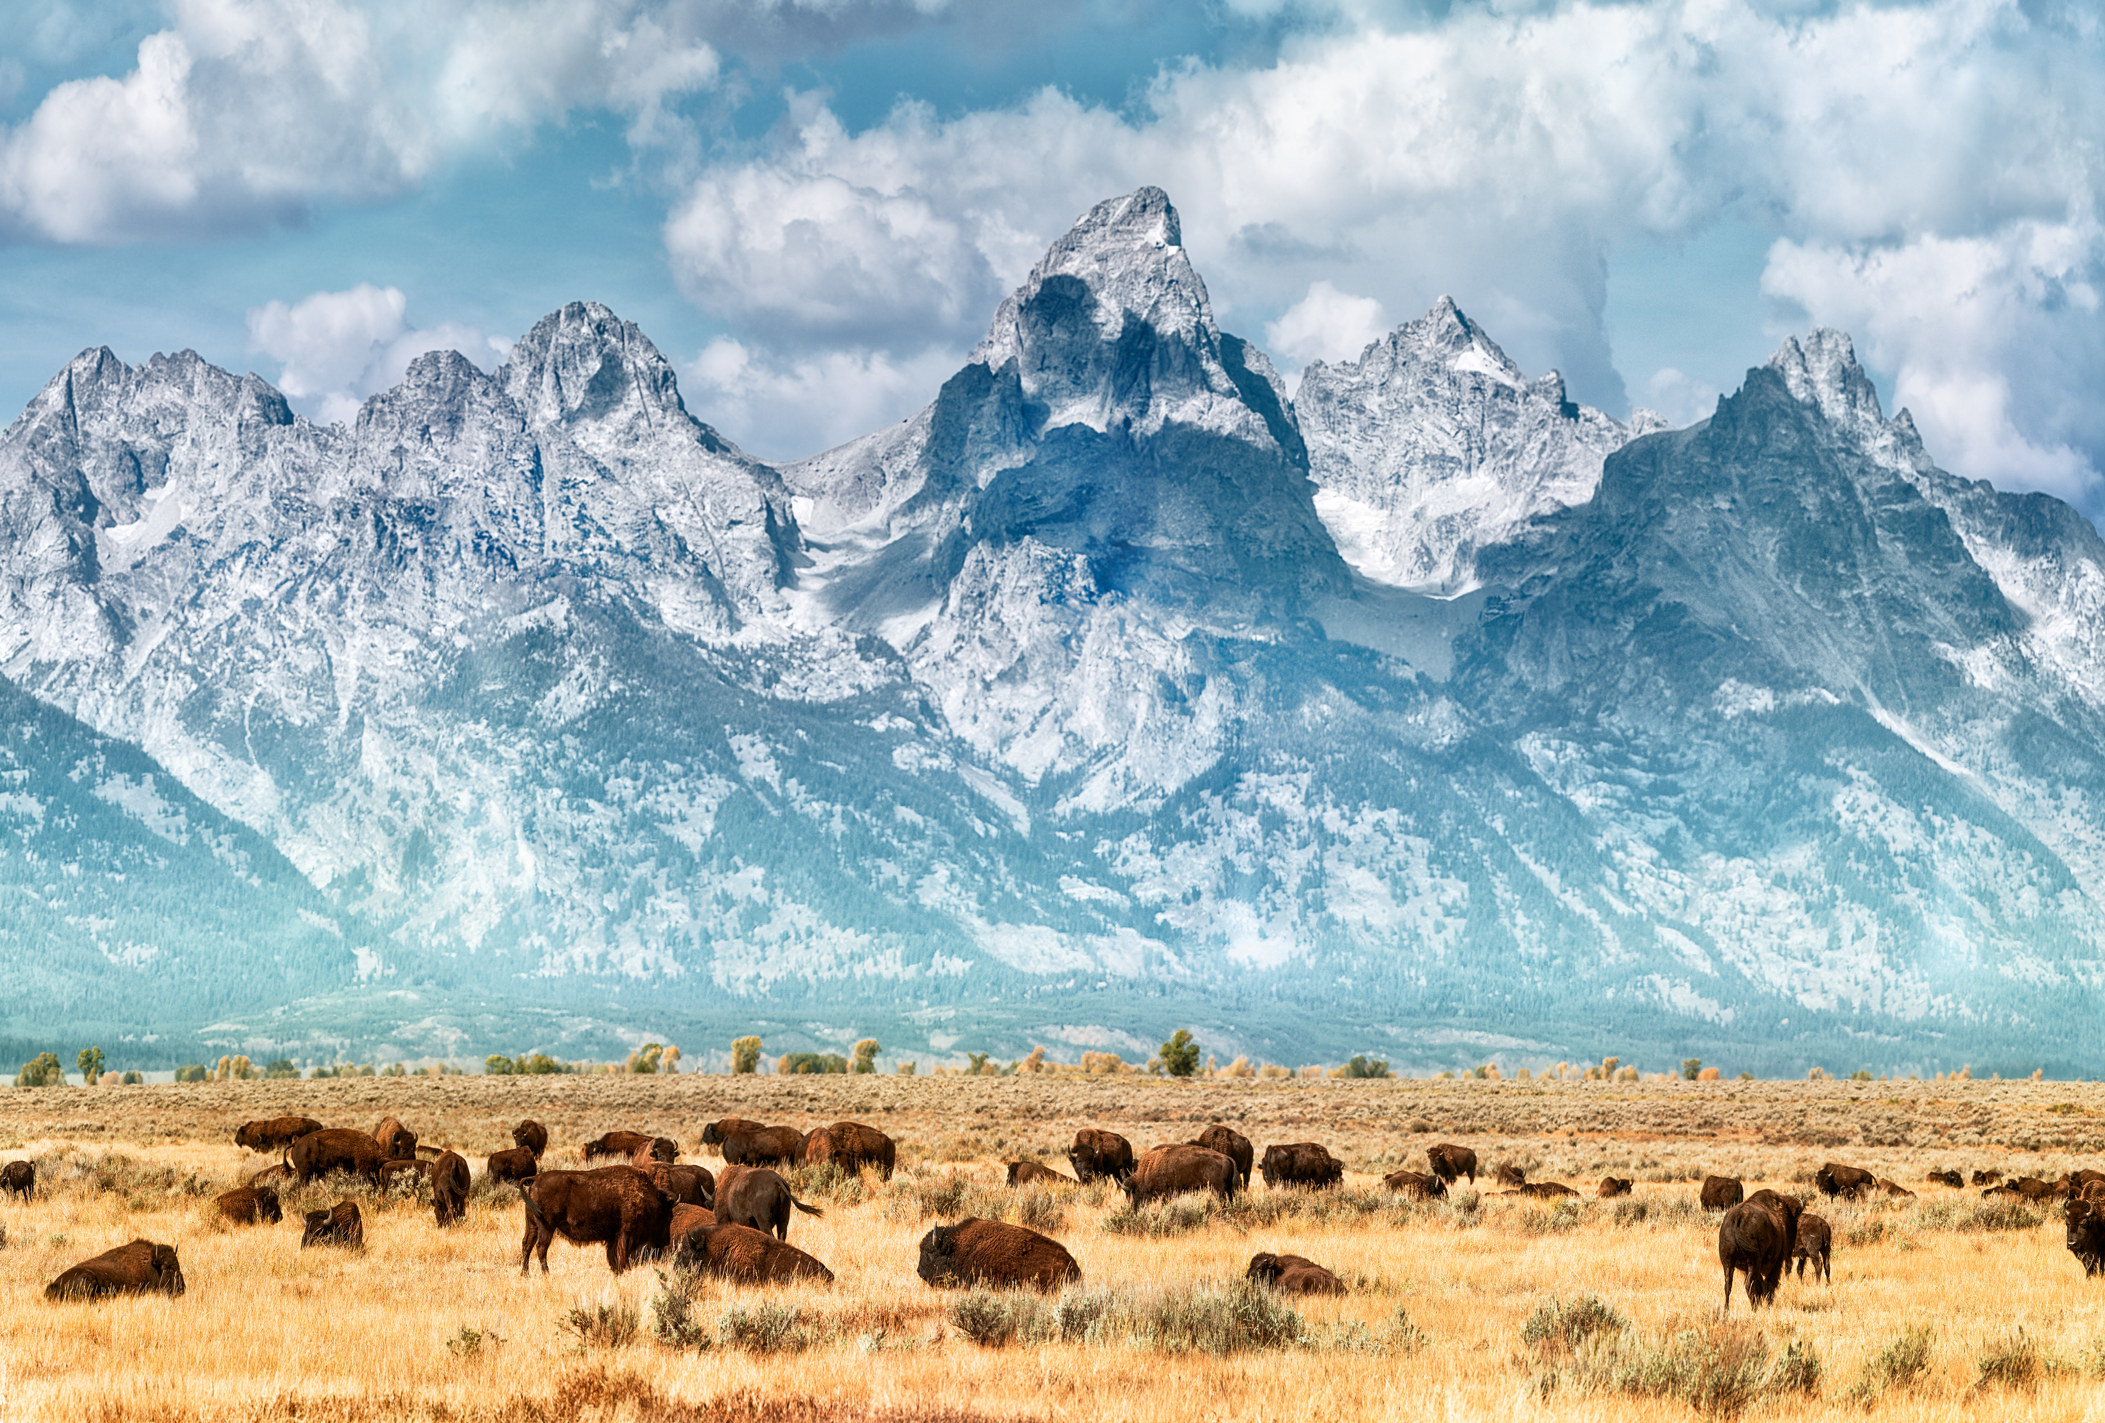 Buffalo graze on a prairie in the foreground while the snowcapped Grand Teton Mountain Range juts out in the background